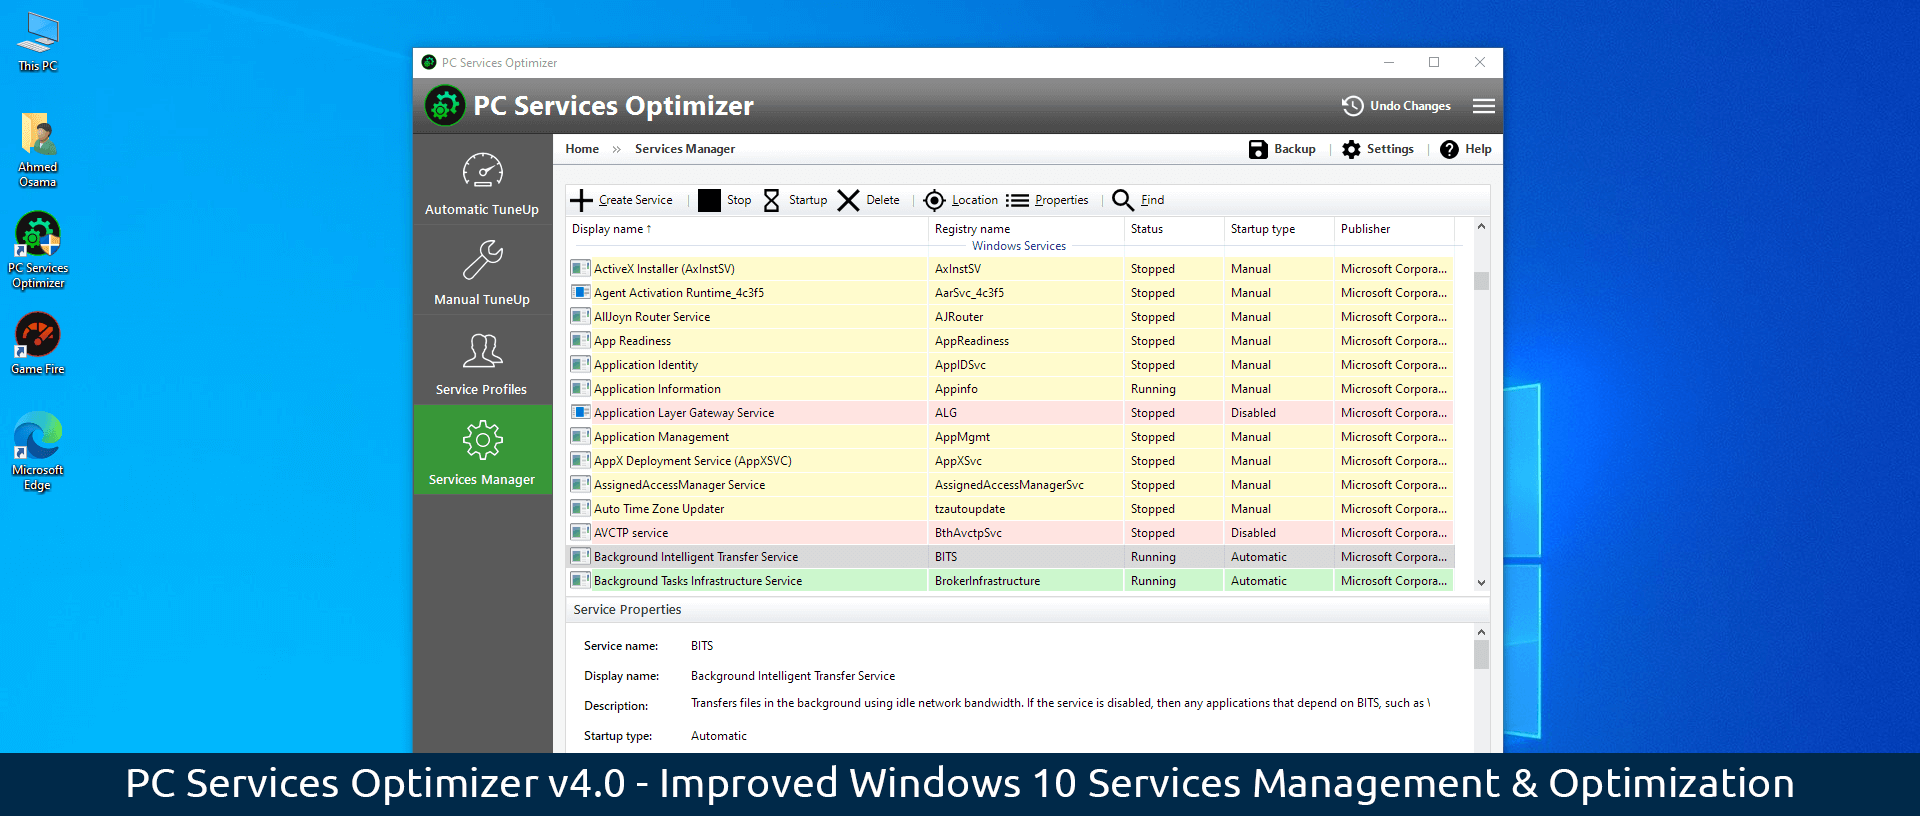 PC Services Optimizer v4 - Improved Windows 10 Services Management and Optimization